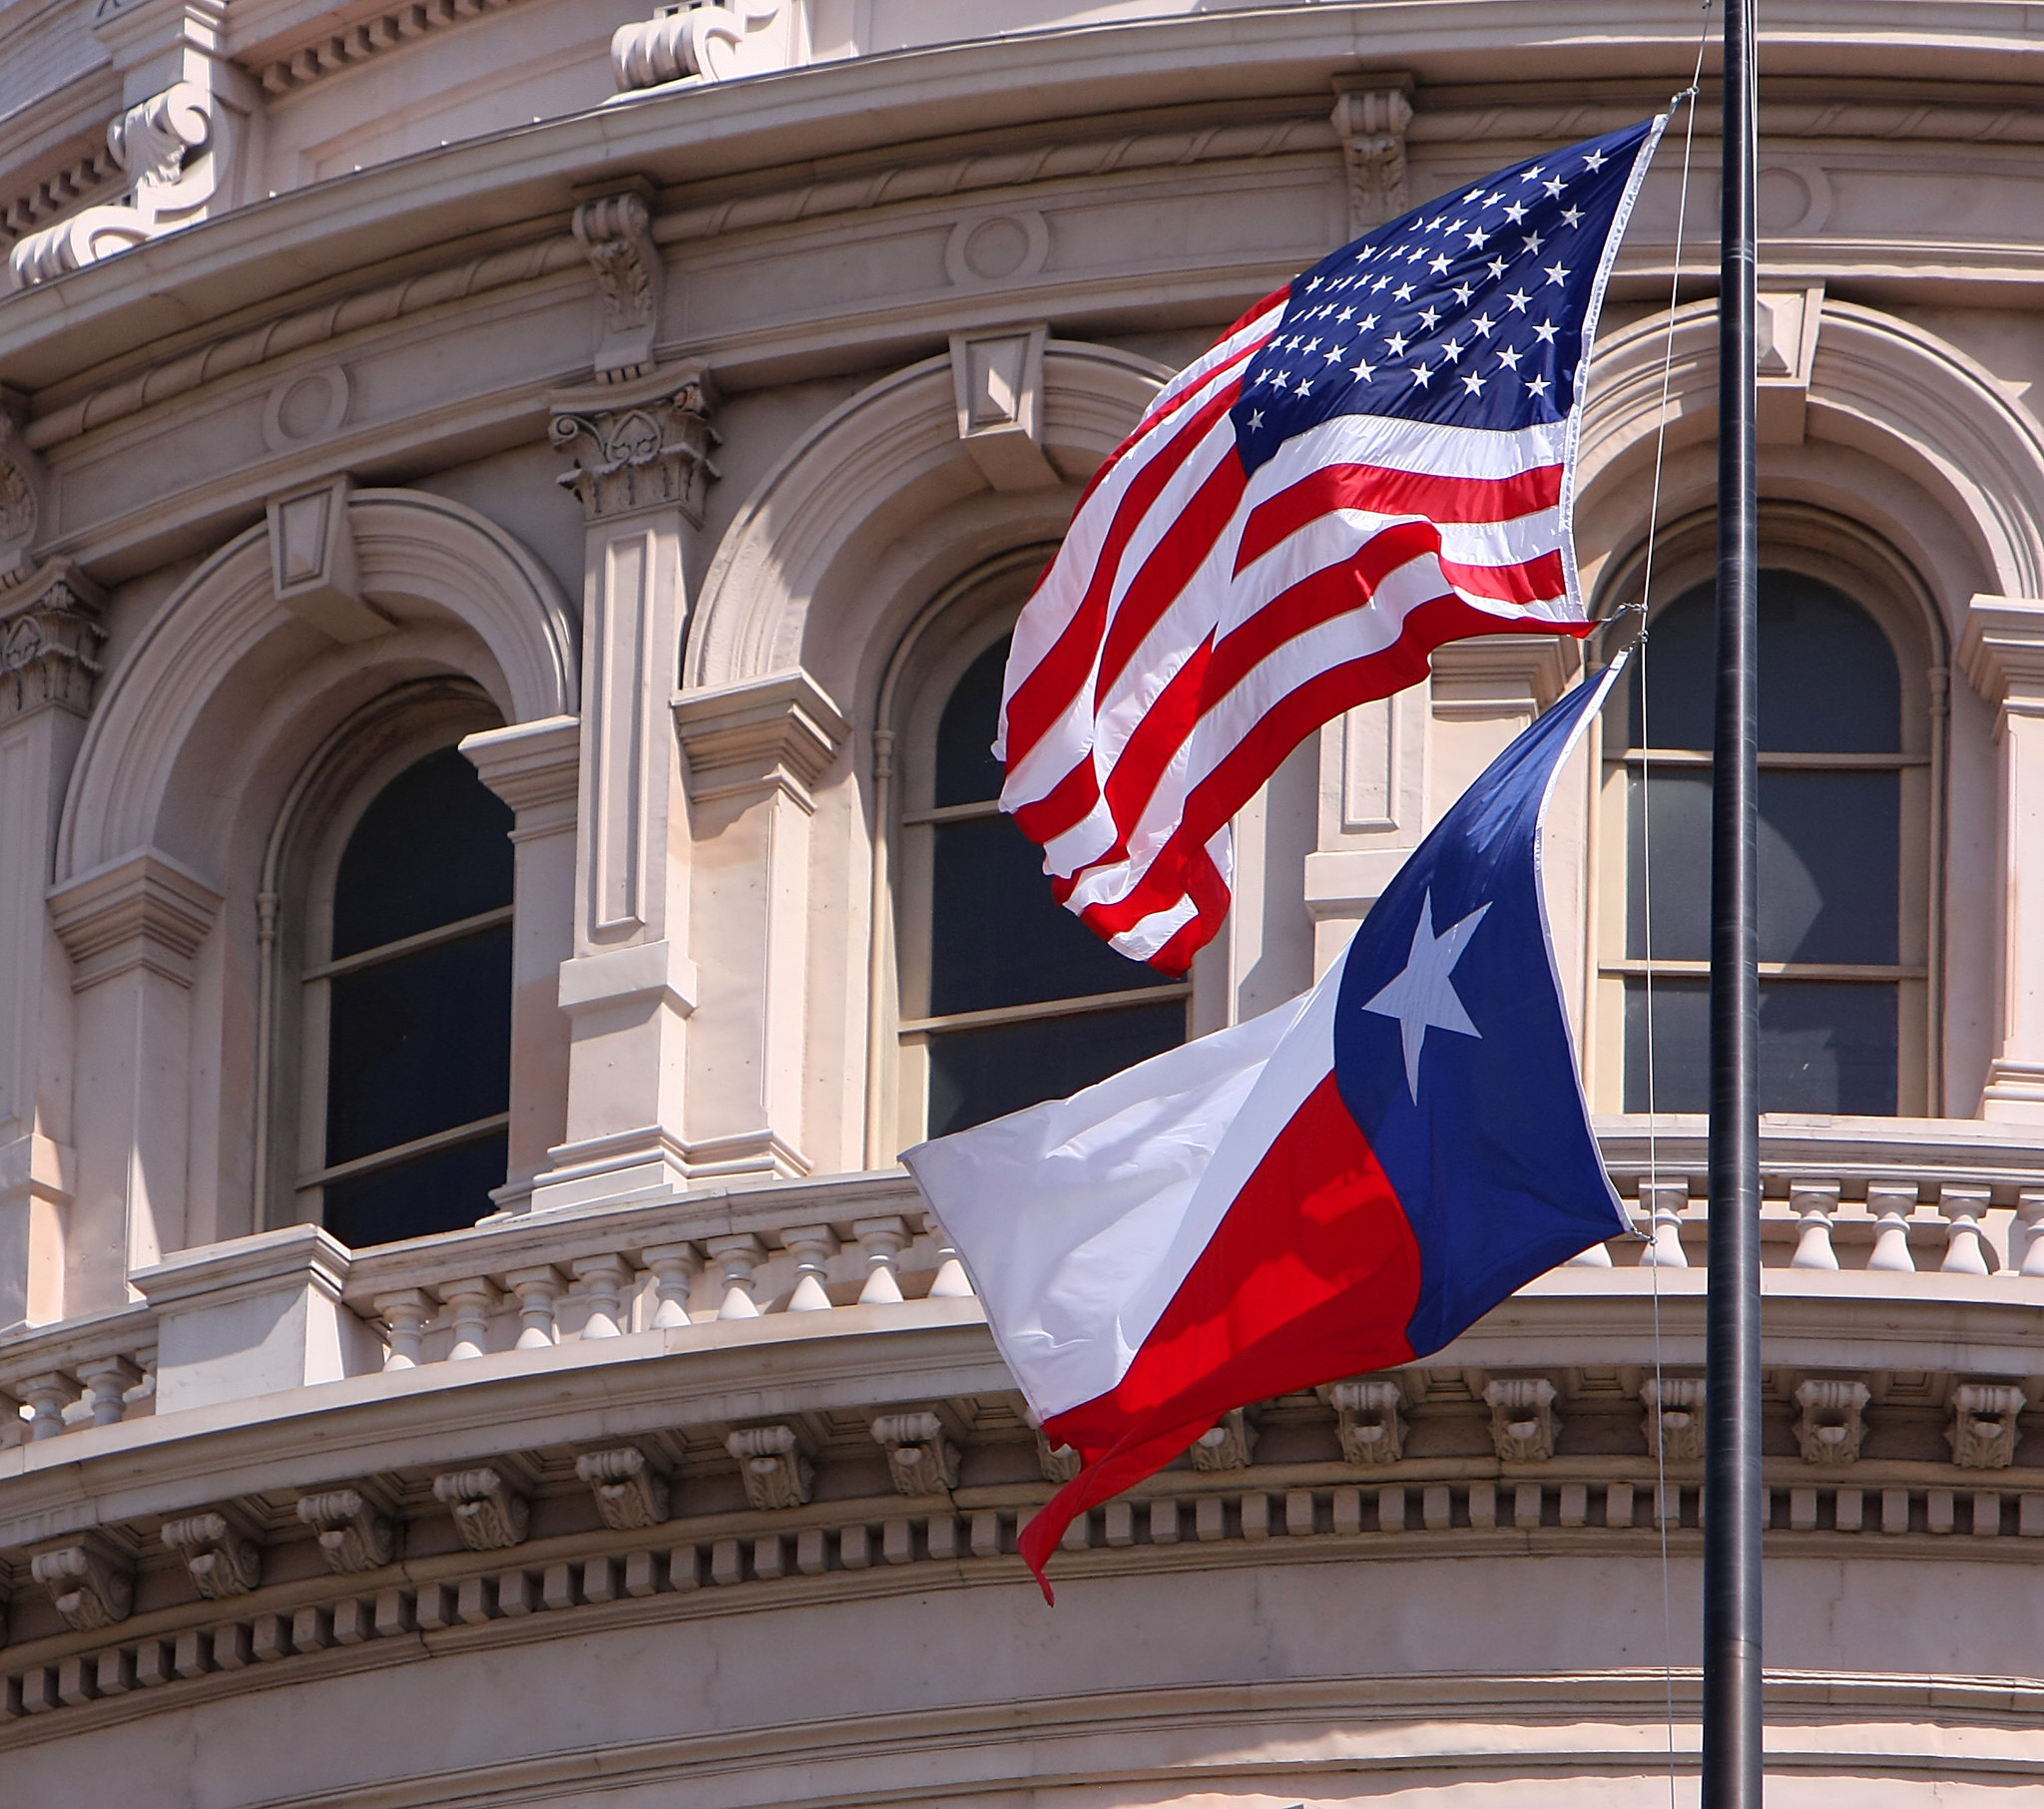 Texas wins Ninth Gold Shovel Award for job creation and business investments